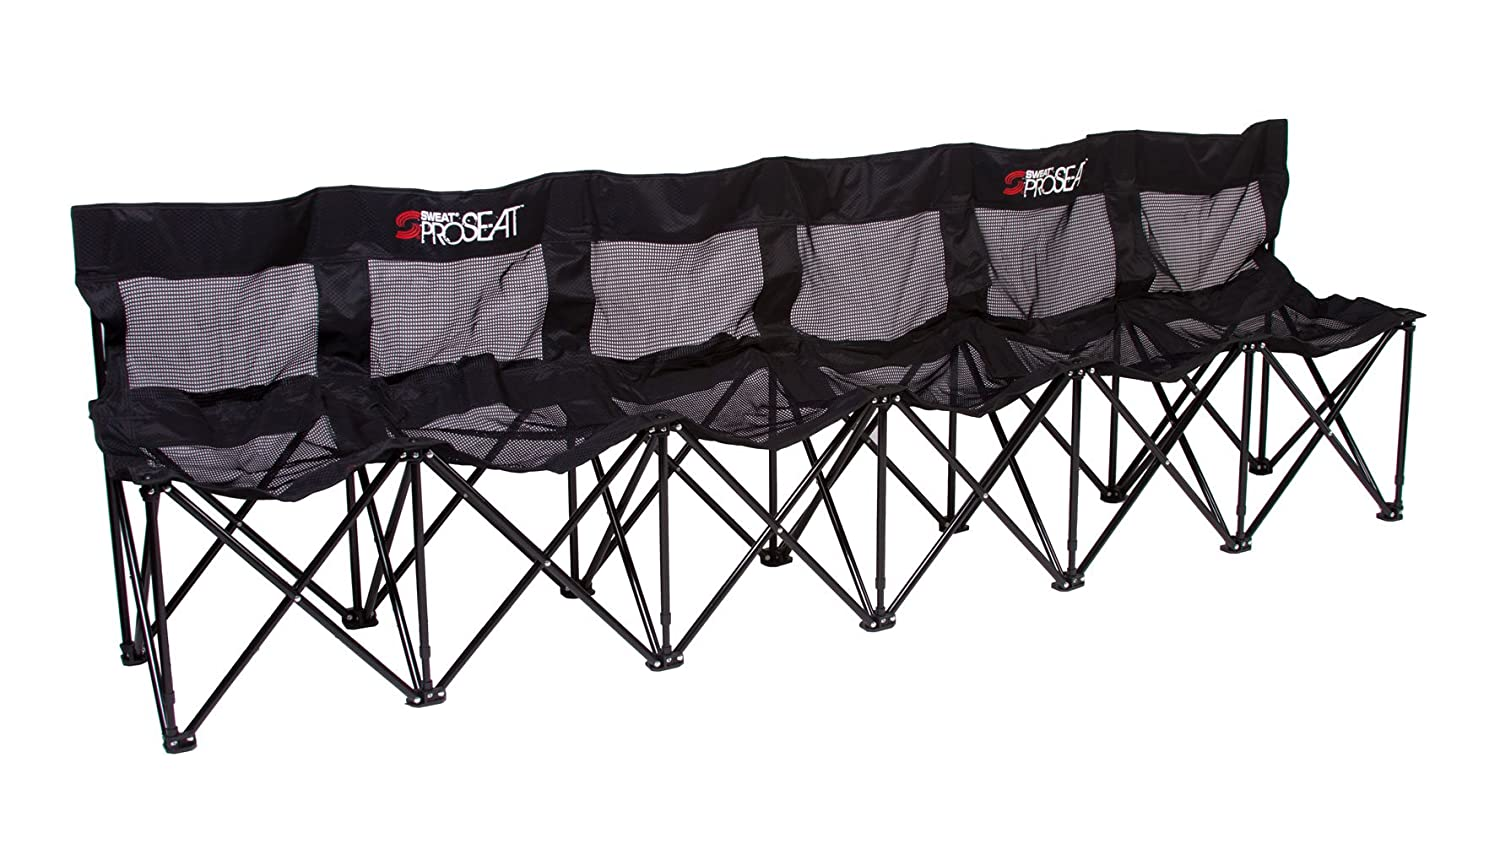 Sweat Bench - 6 Seat Folding soccer Bench Chair with Back - Black